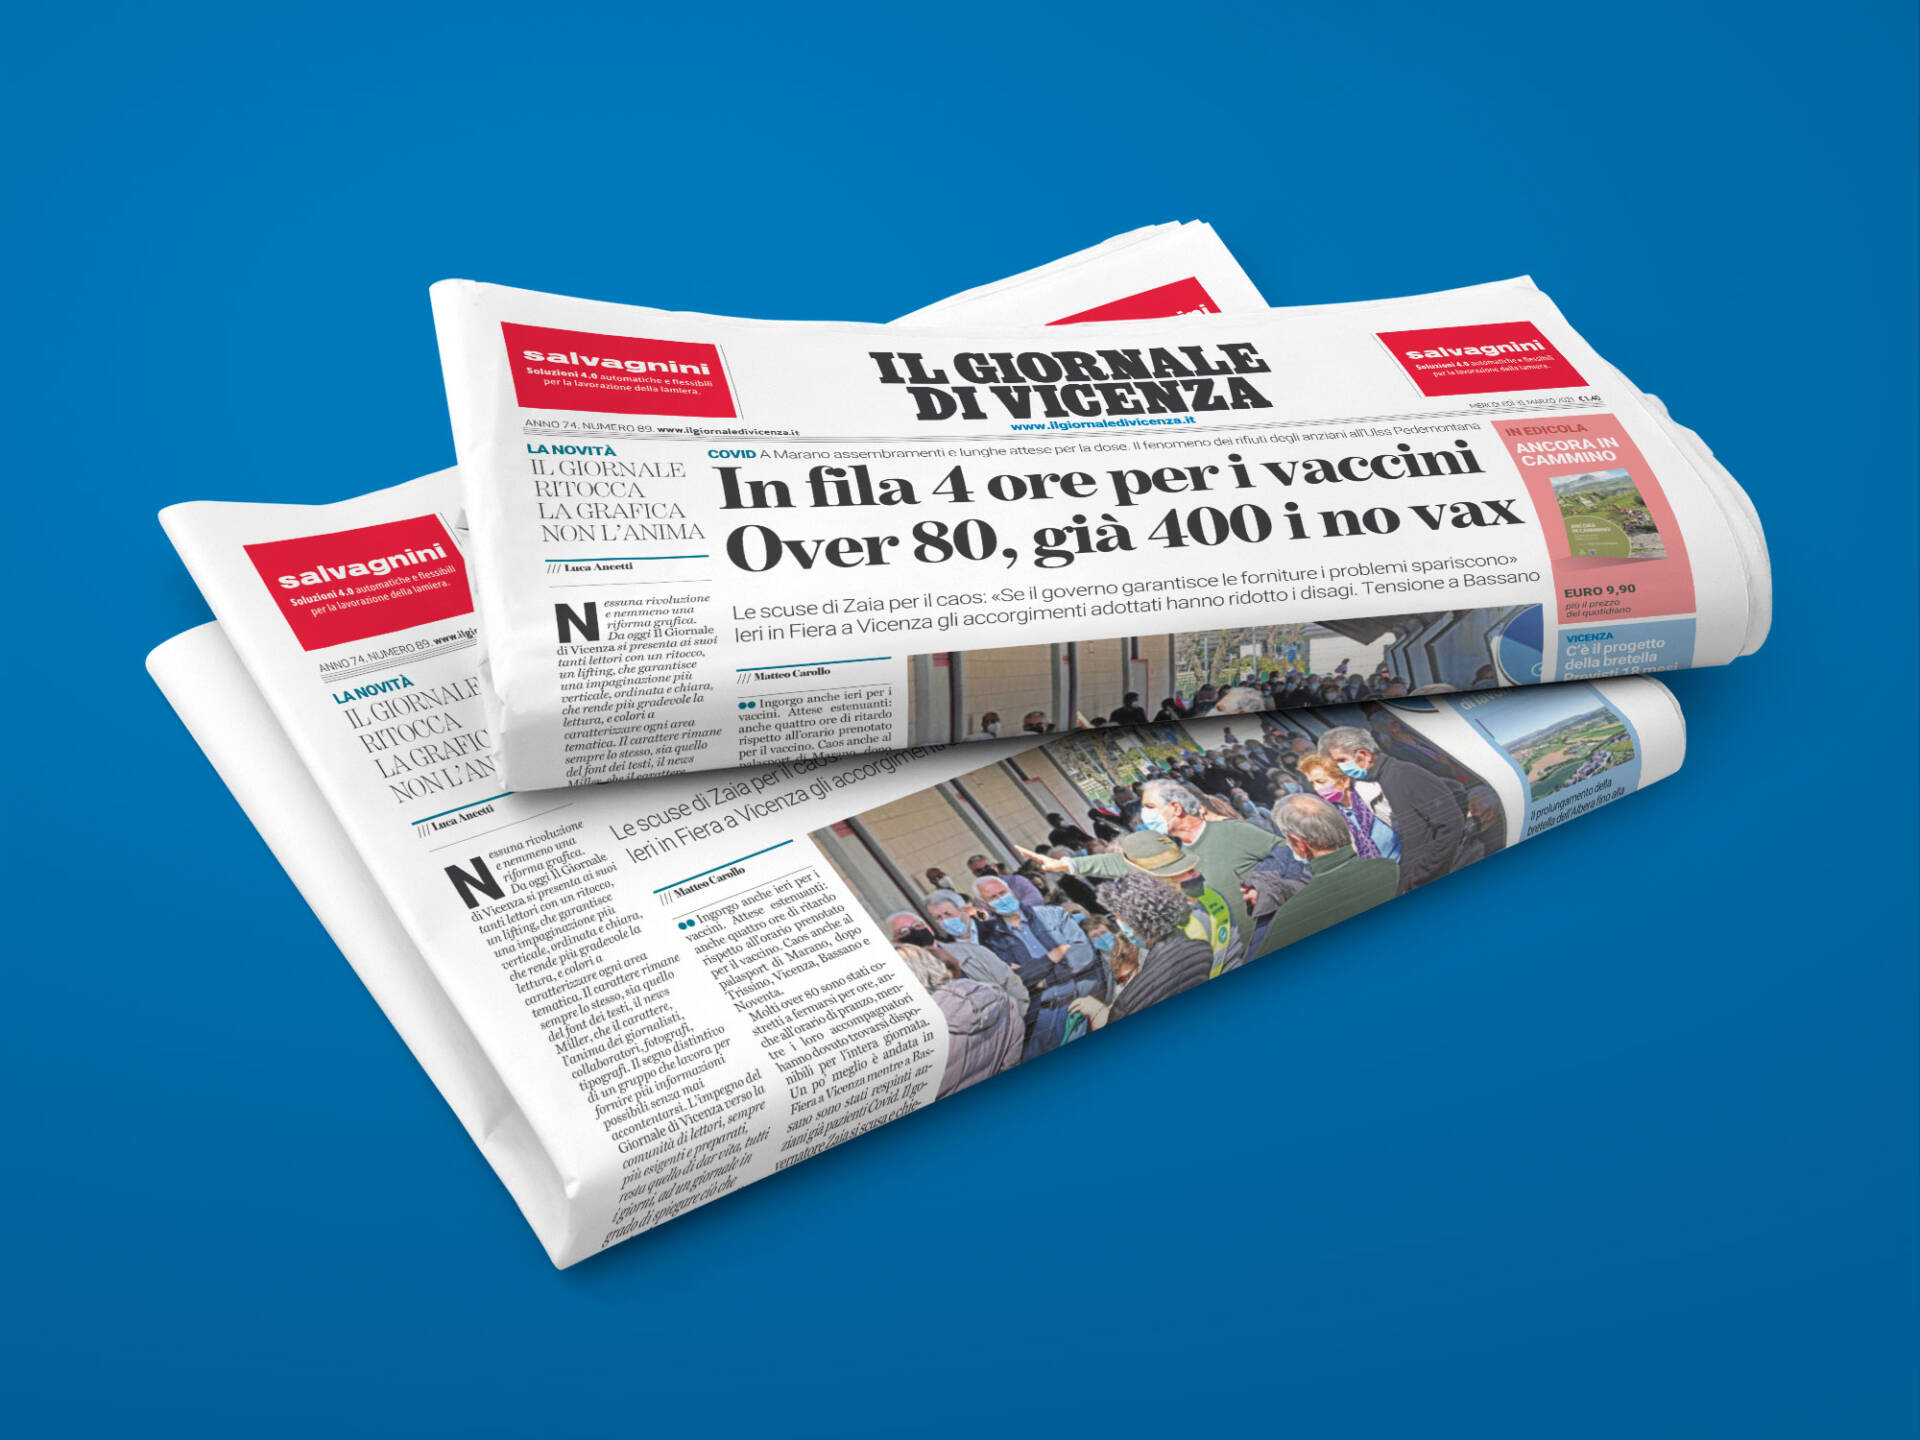 Il-Gionrale-Di-Vicenza-01-Wenceslau-News-Design-2021